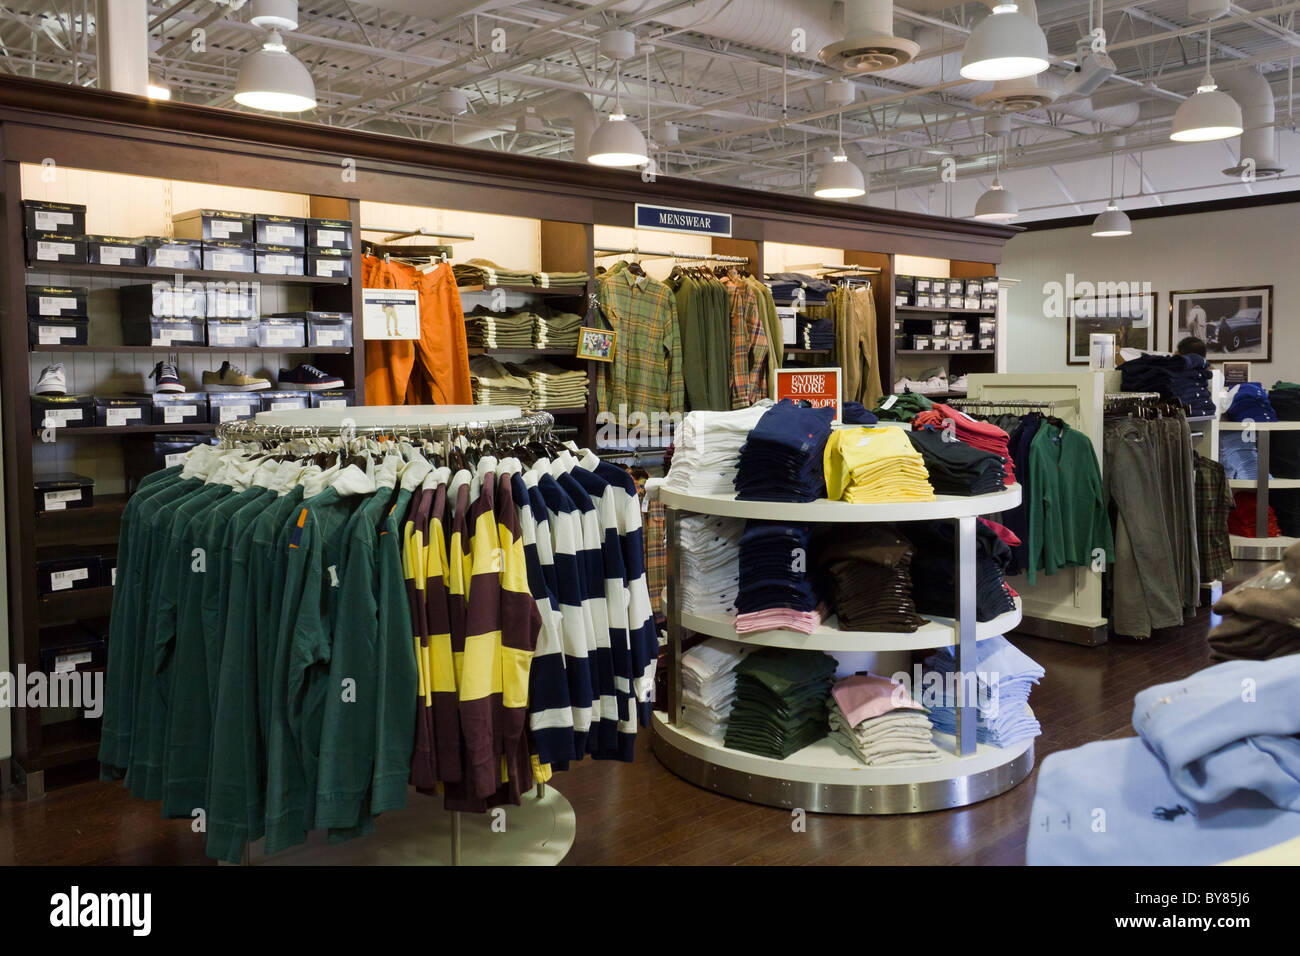 Polo Ralph Lauren store, Chicago Premium Outlets, Aurora, Illinois, USA - Stock Image